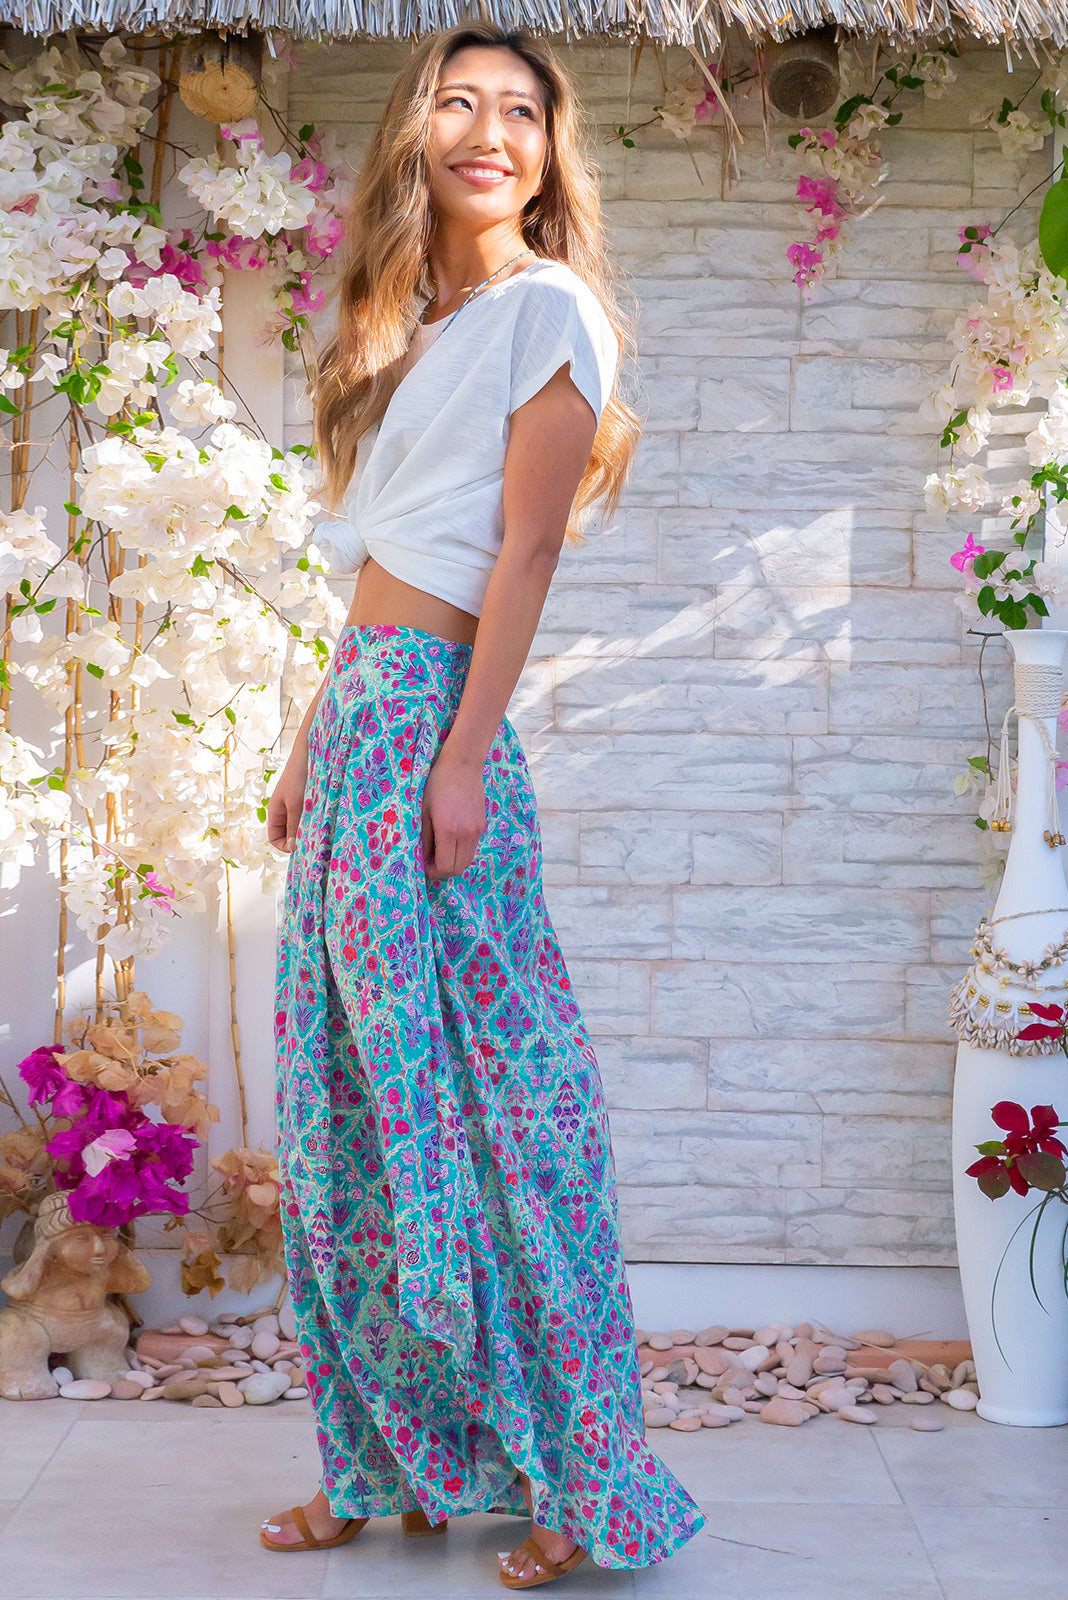 Sails Cadiz Cotton Teal Maxi Skirt, bohemian summers style, 65% cotton, 35% rayon, scooped hemline shorter at sides, v shaped panelled waist band, elasticated back of waist, side pockets, blue/green base with medium bright pink, purple, yellow and orange geometric print.